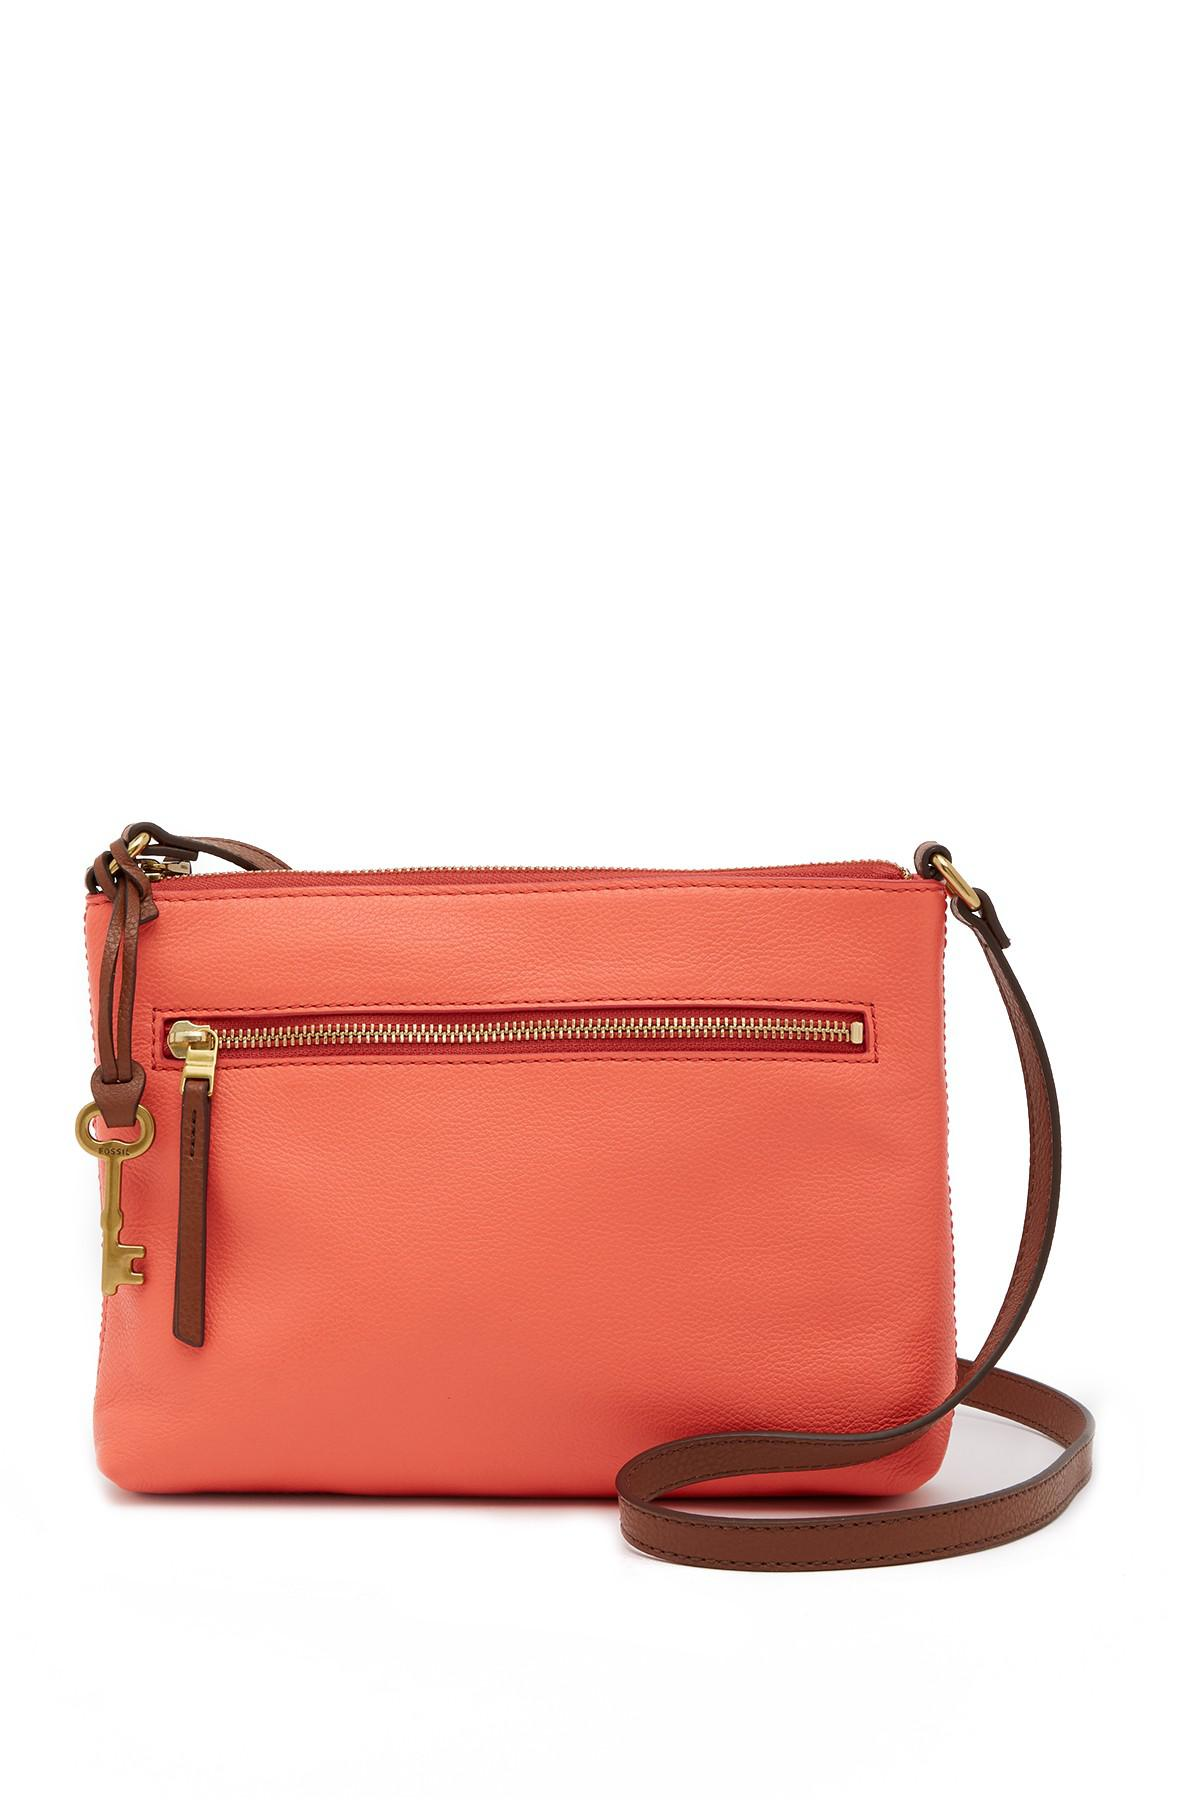 545421d630fd Lyst - Fossil Fiona Small Crossbody Bag in Red